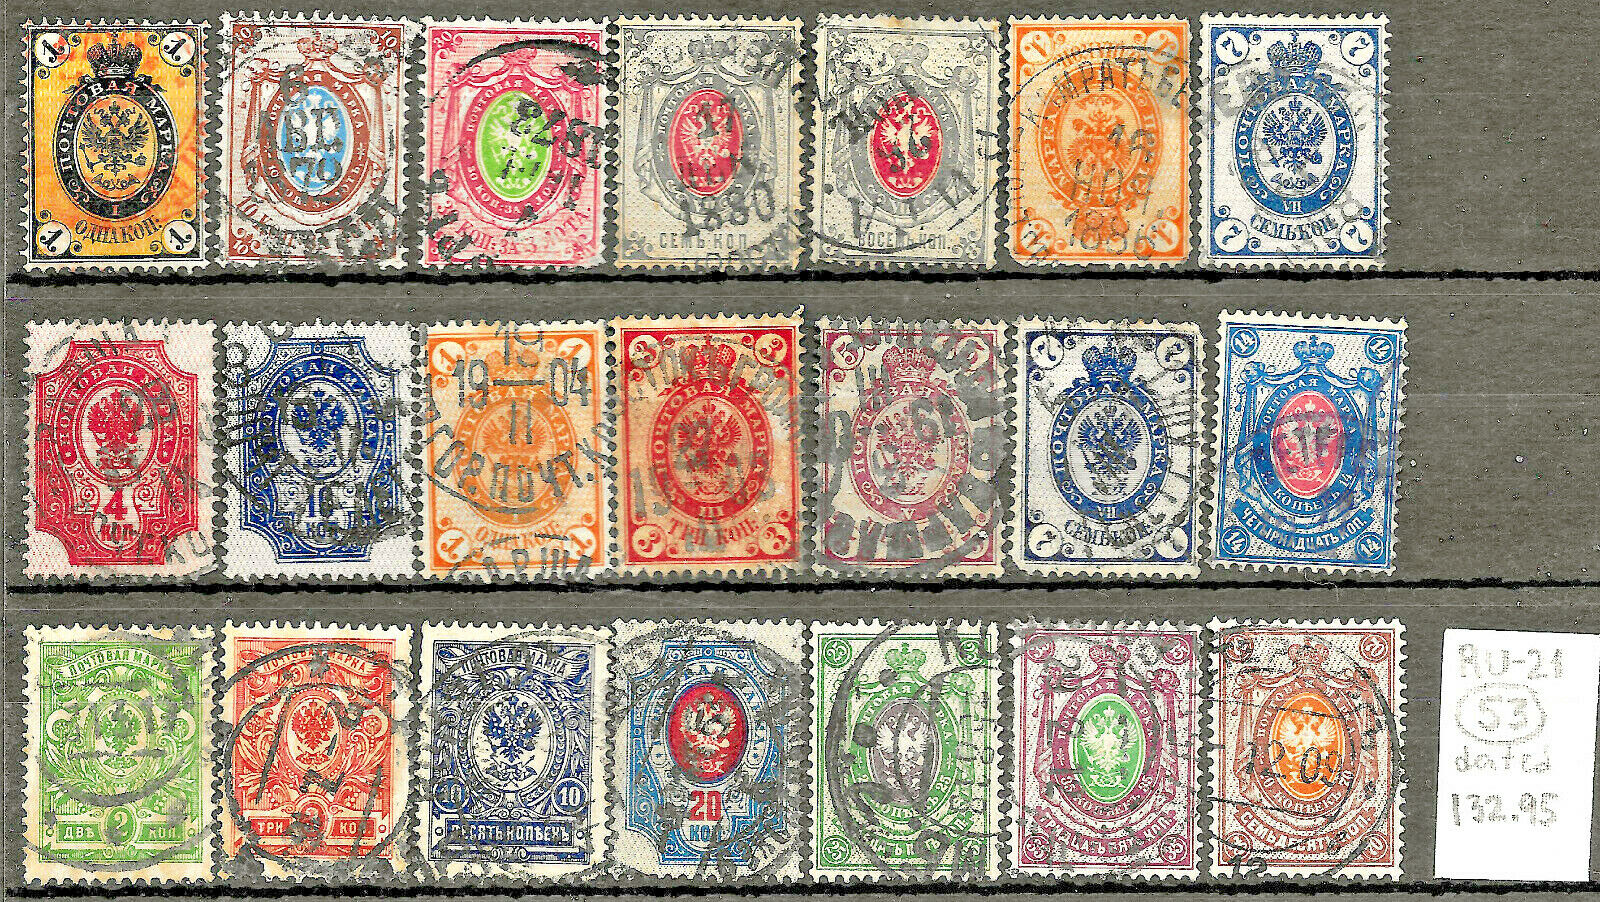 Imperial Russia - Group Of Old Russian Stamps n53 -See Description- CV 132.95 - $17.00